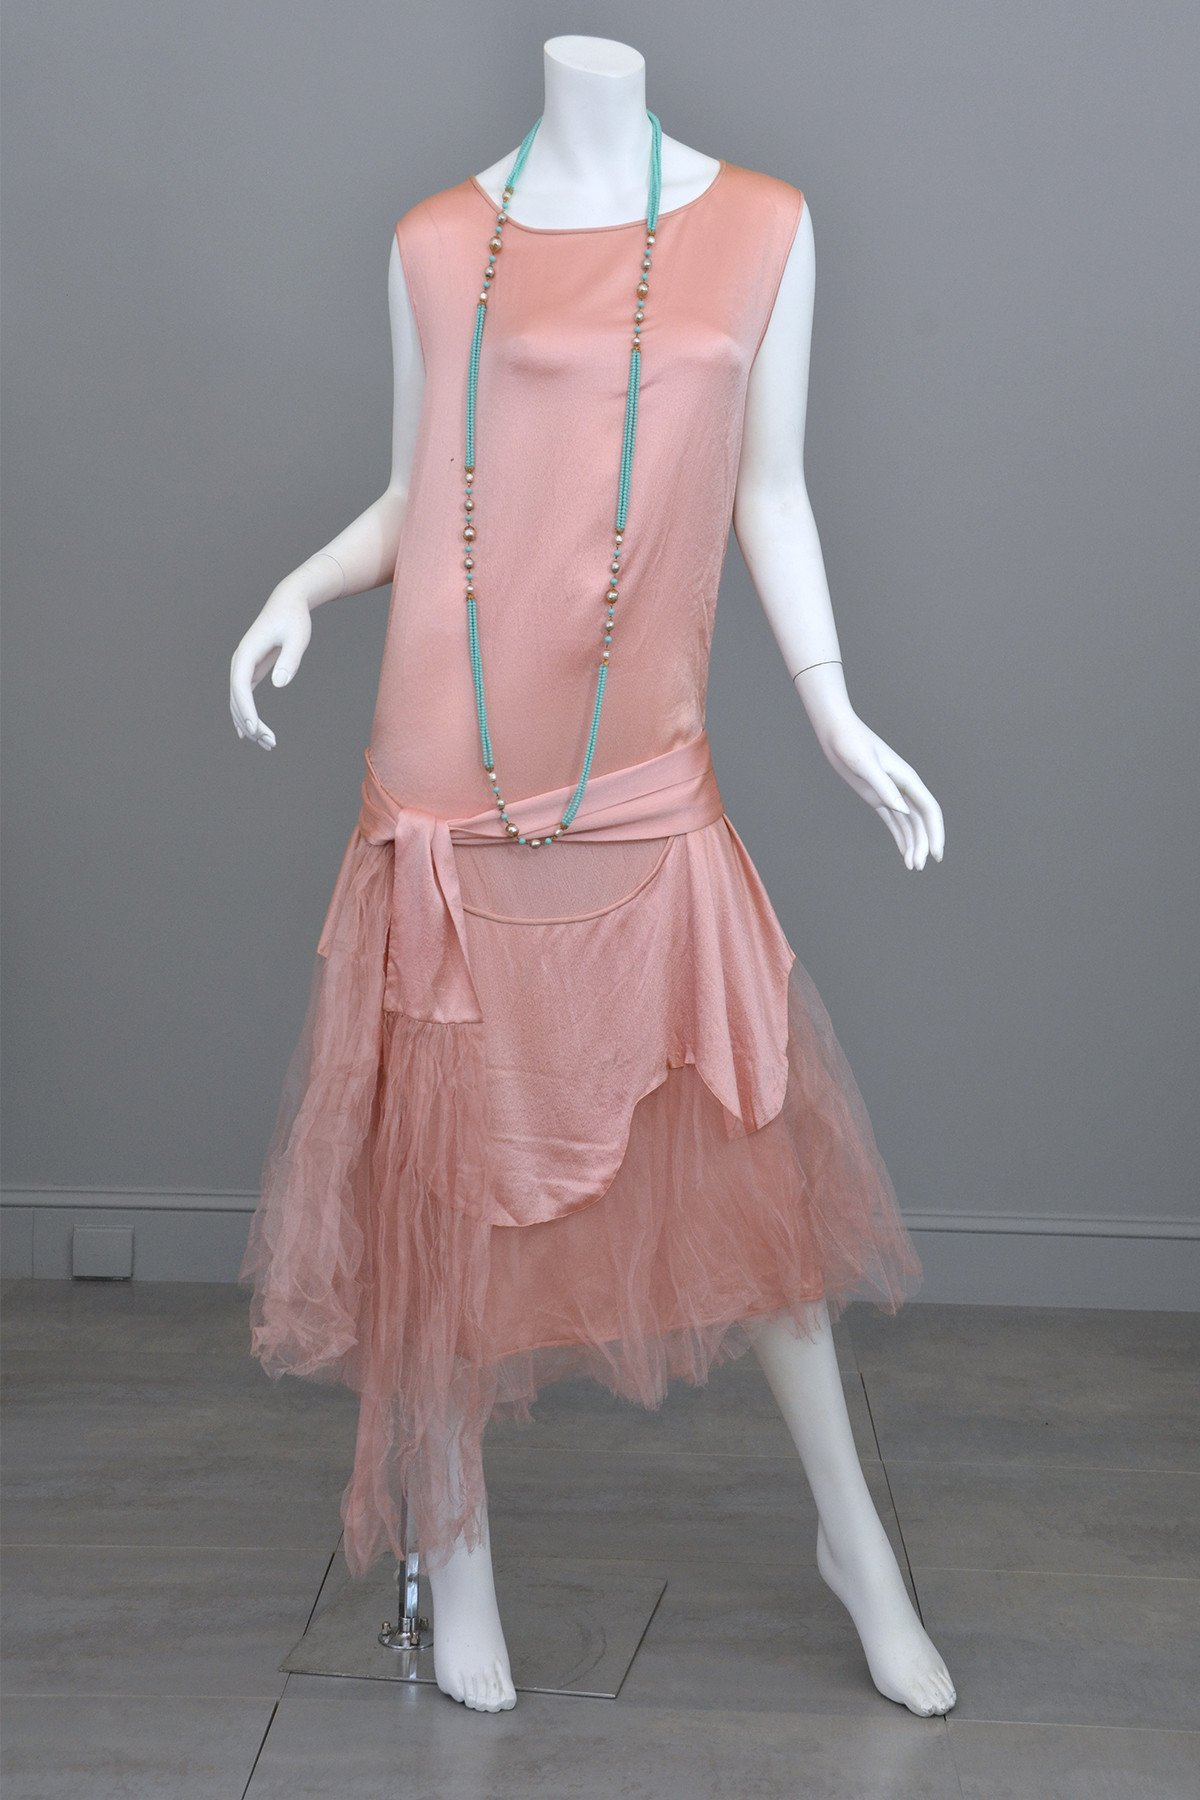 Zelda Fitzgerald's Outfit